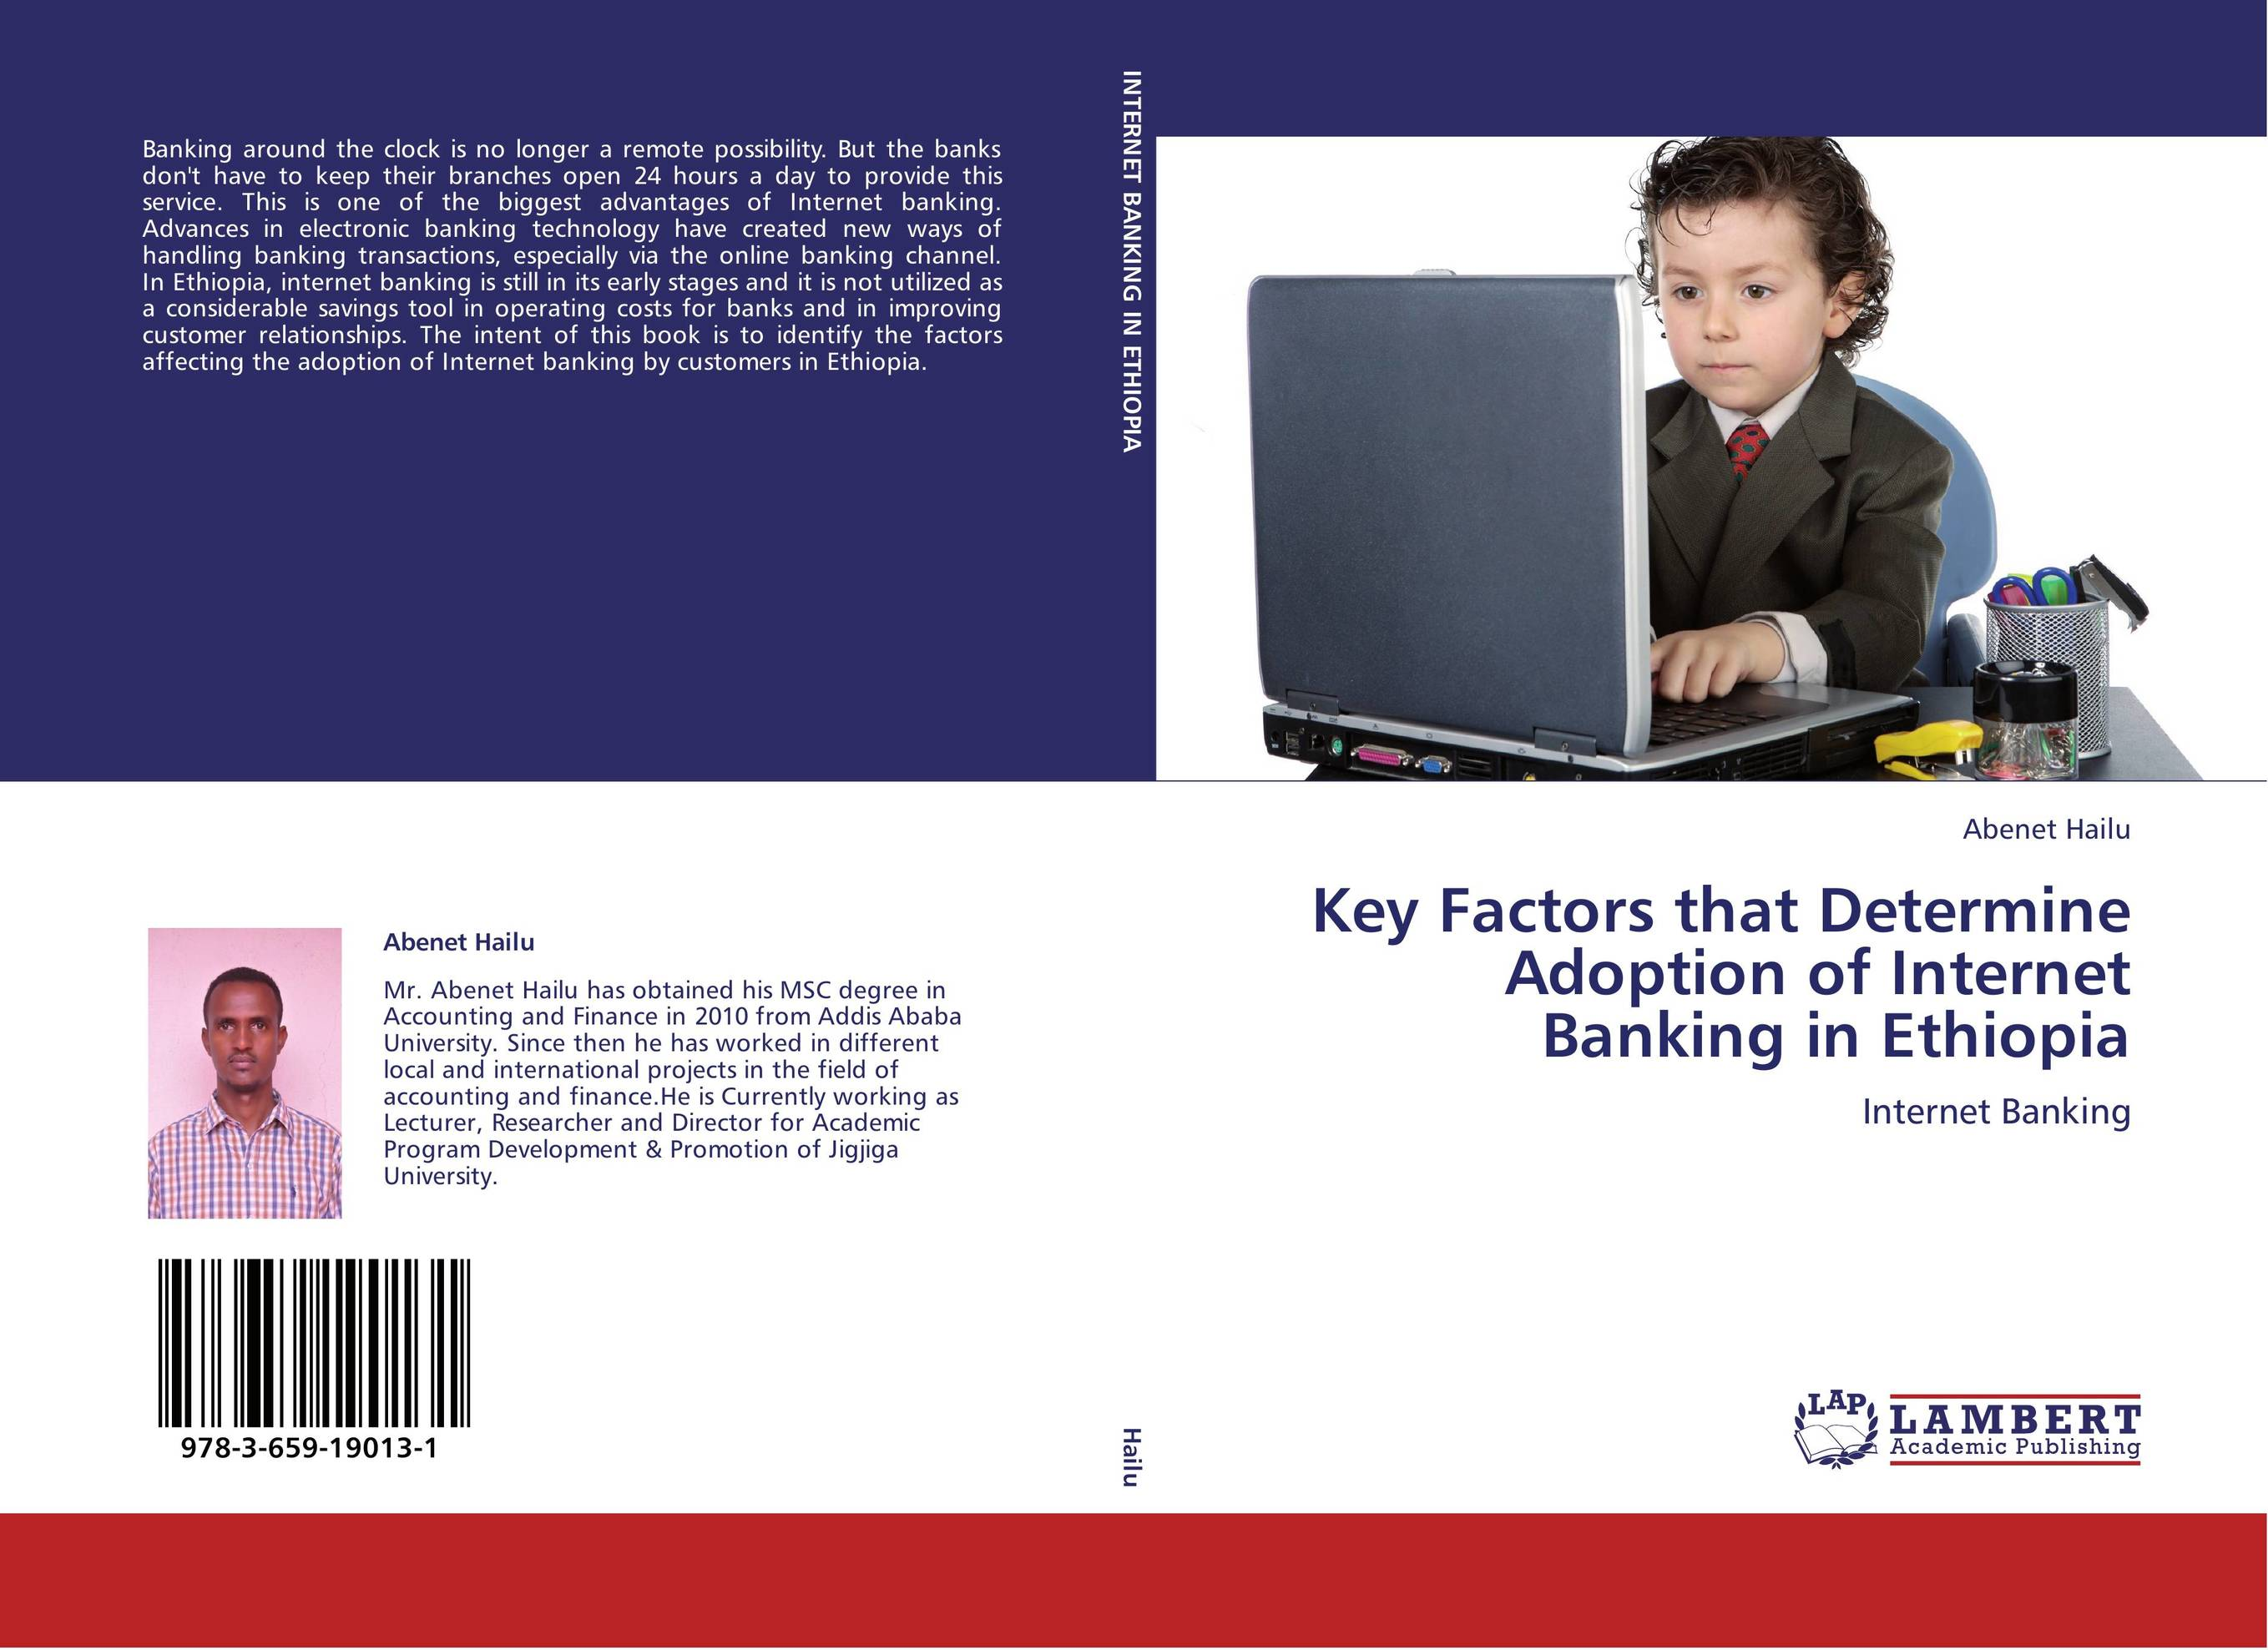 difference between internet banking and electronic banking information technology essay This discussion proves that in the era of electronic commerce, proper information protection and proof of it may be demanded among business partners  information term paper, technology essays  expository essays on what makes a great leader are focused on explaining the difference between an ordinary leader and a great leader although.